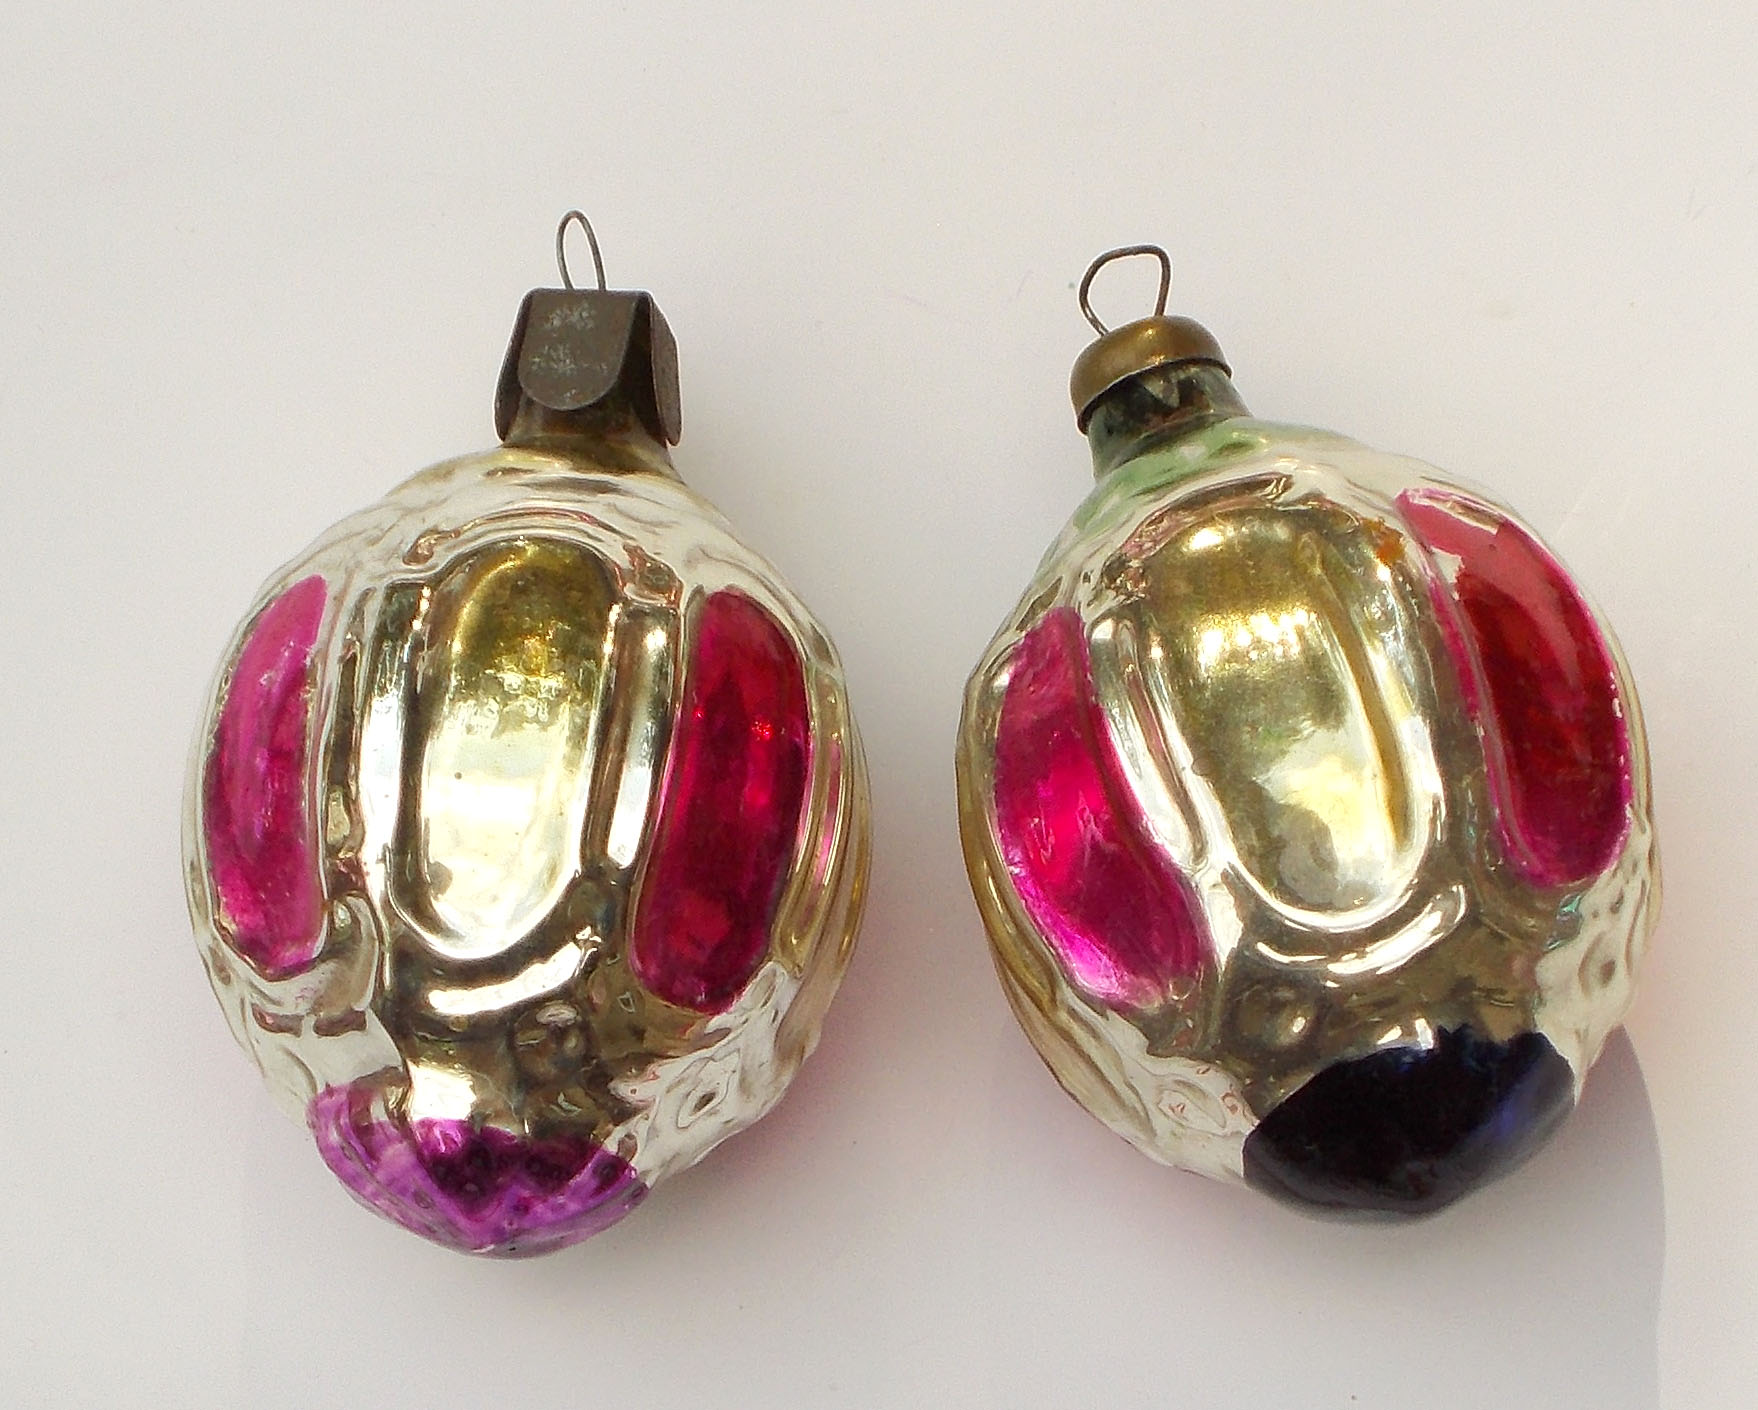 Russia Christmas Ornaments.Details About 2 Antique Old Vintage Russian Silver Glass Ussr Soviet Christmas Xmas Ornaments